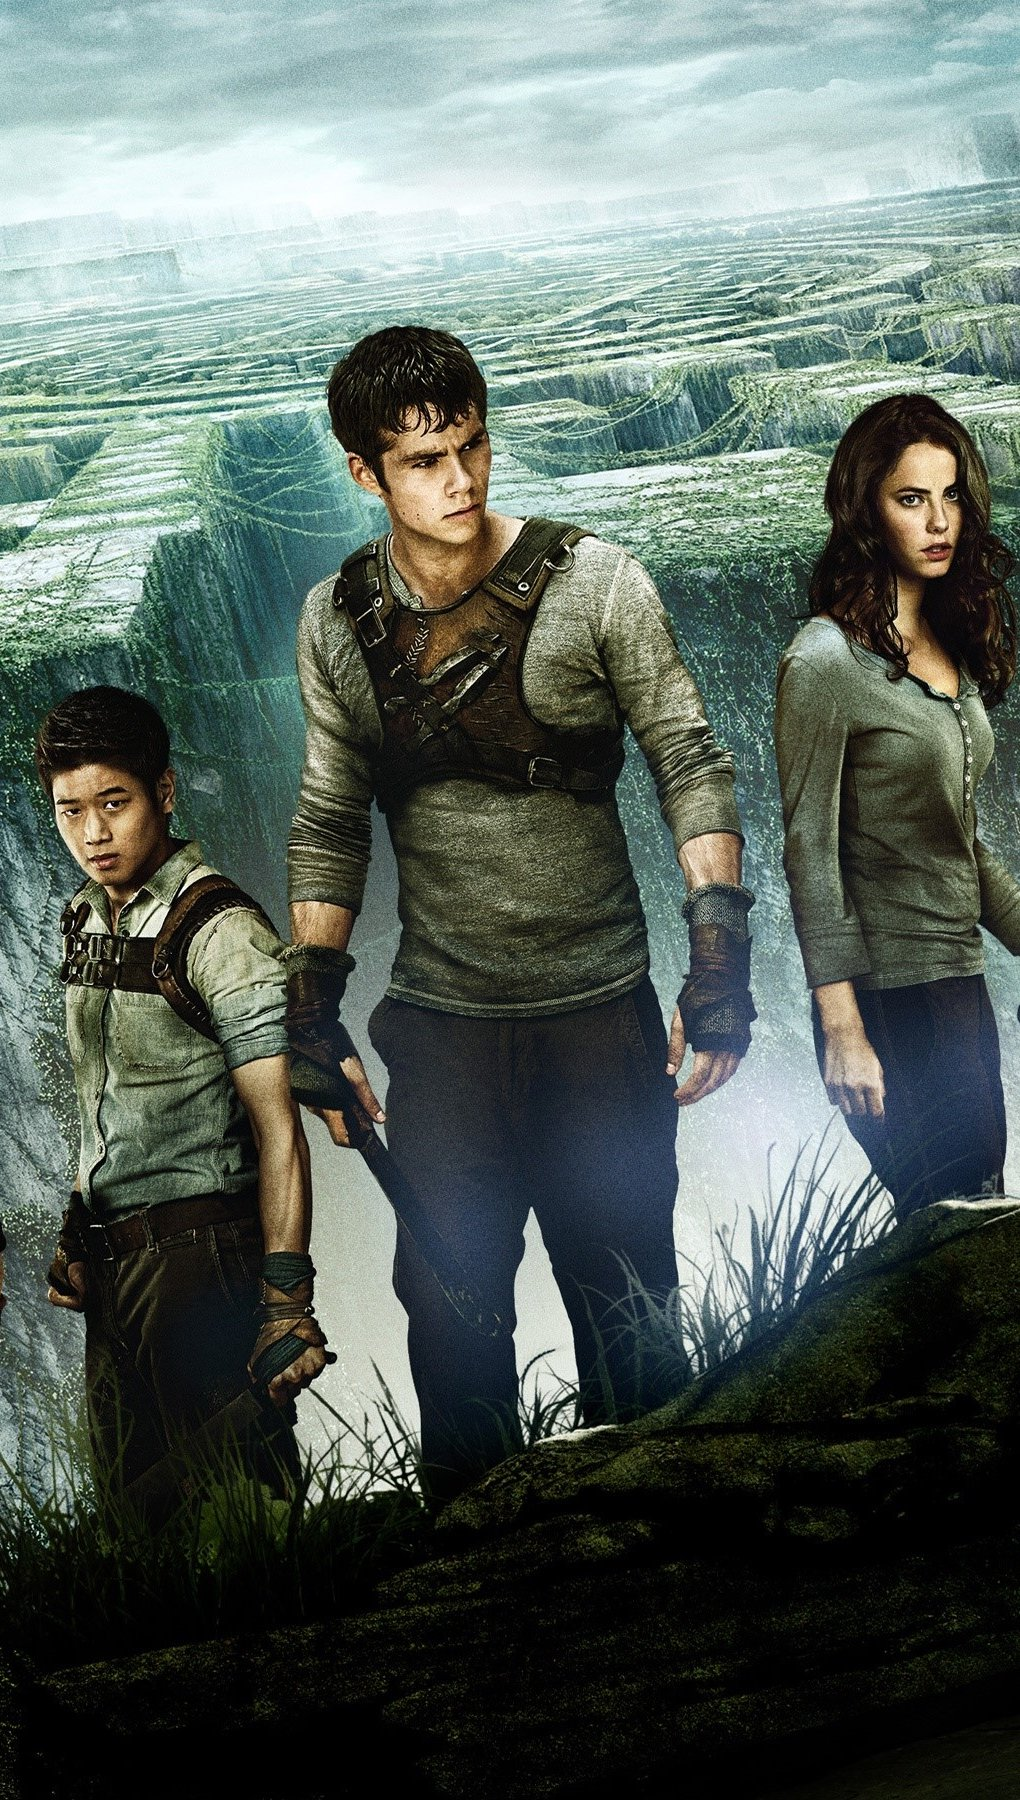 Fondos de pantalla The maze runner Vertical